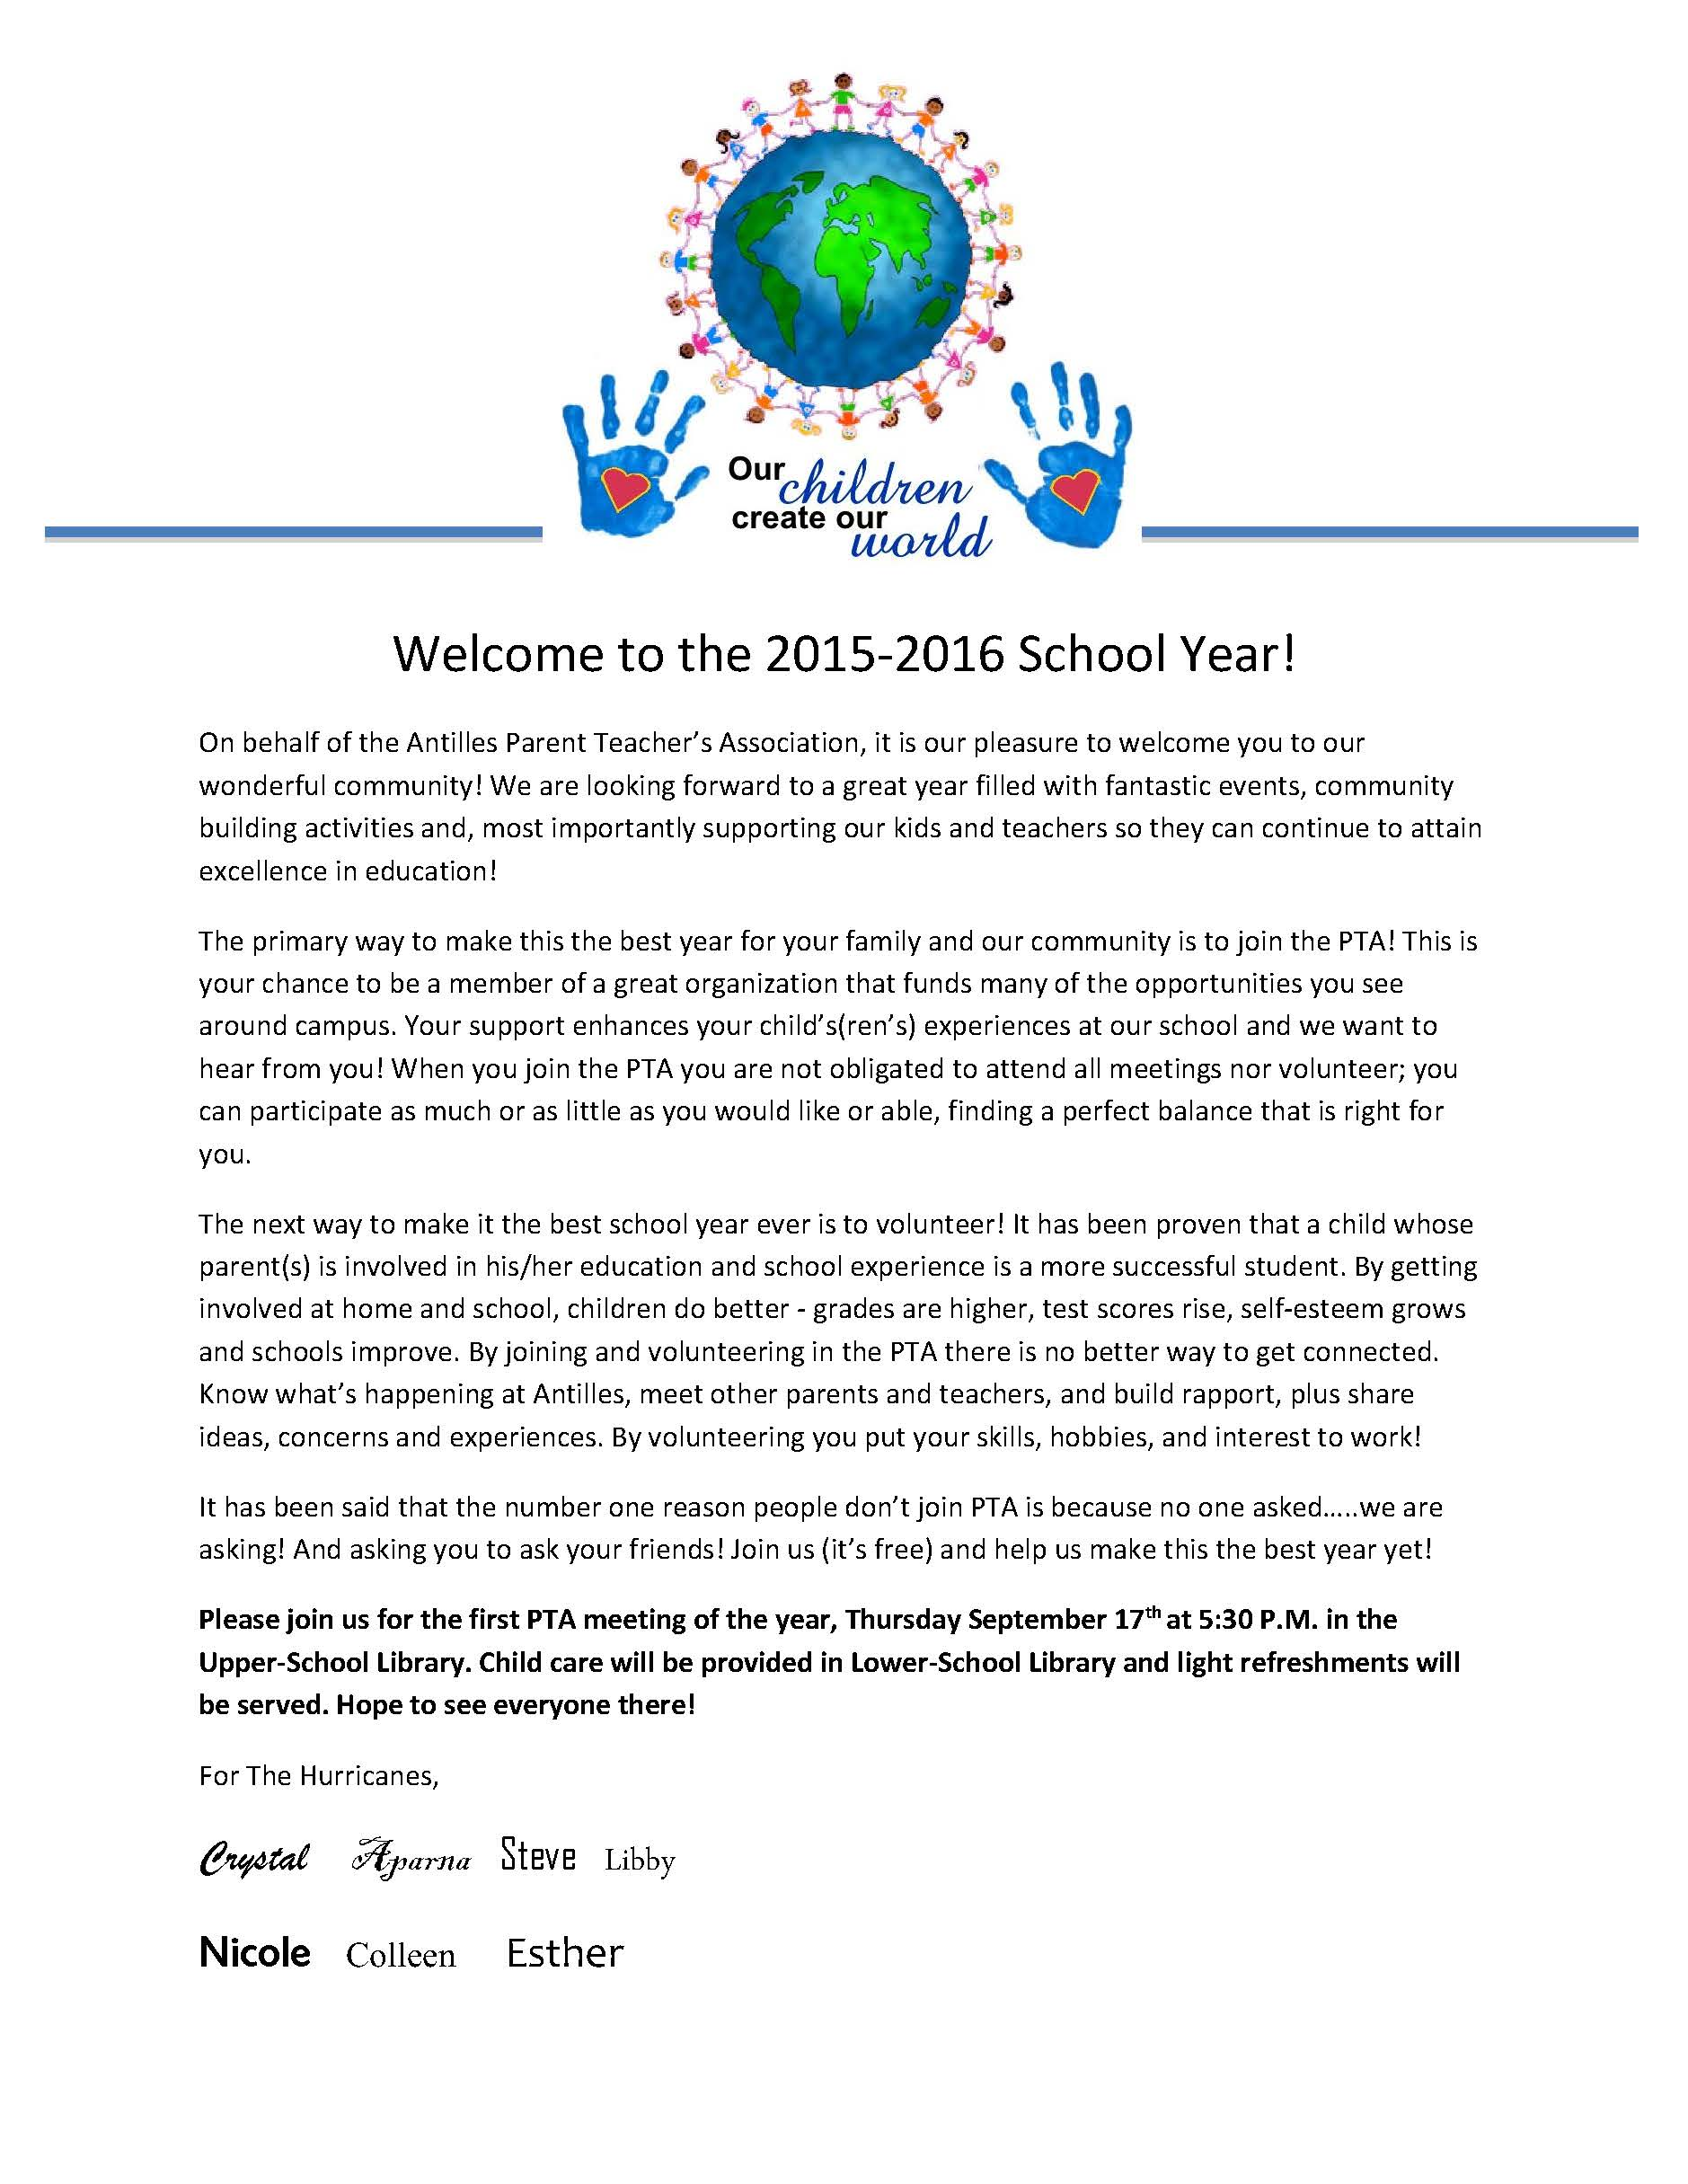 Sample Welcome Back To School Letters From Teachers